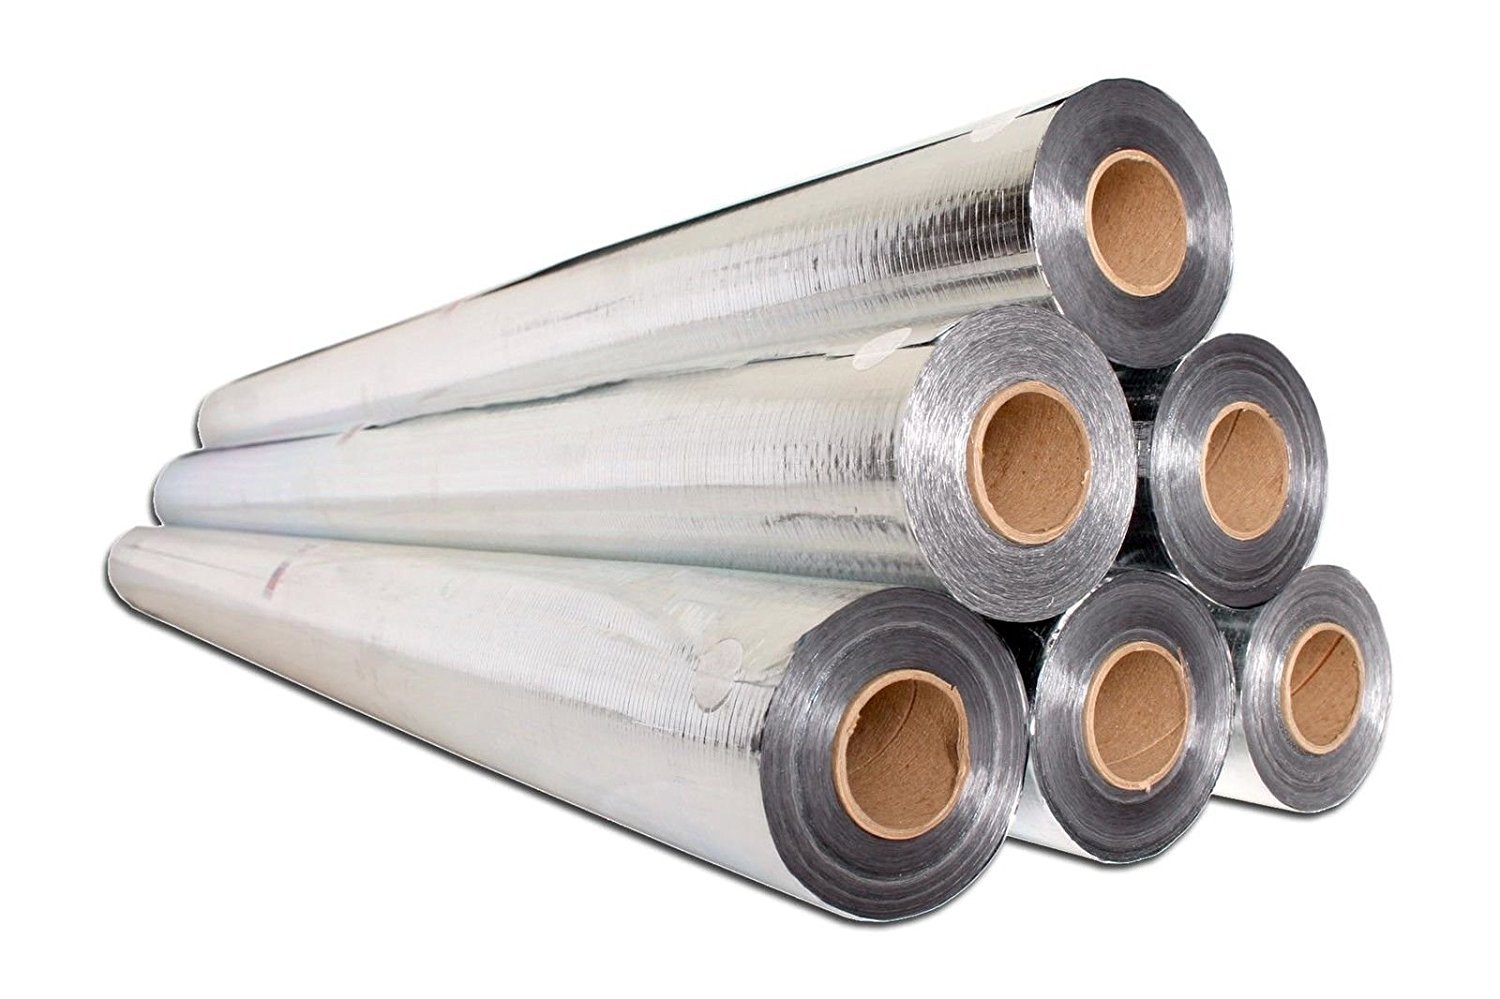 1000 sqft Radiant Barrier Attic Insulation Aluminum Foil Roll 1000 Square Ft 250 x 4 Feet Reflective Insulation Scrim Reinforced Backed Material Heat Barrier Attic House Wraps Tear Proof Strong 4x250 by AES (Image #2)